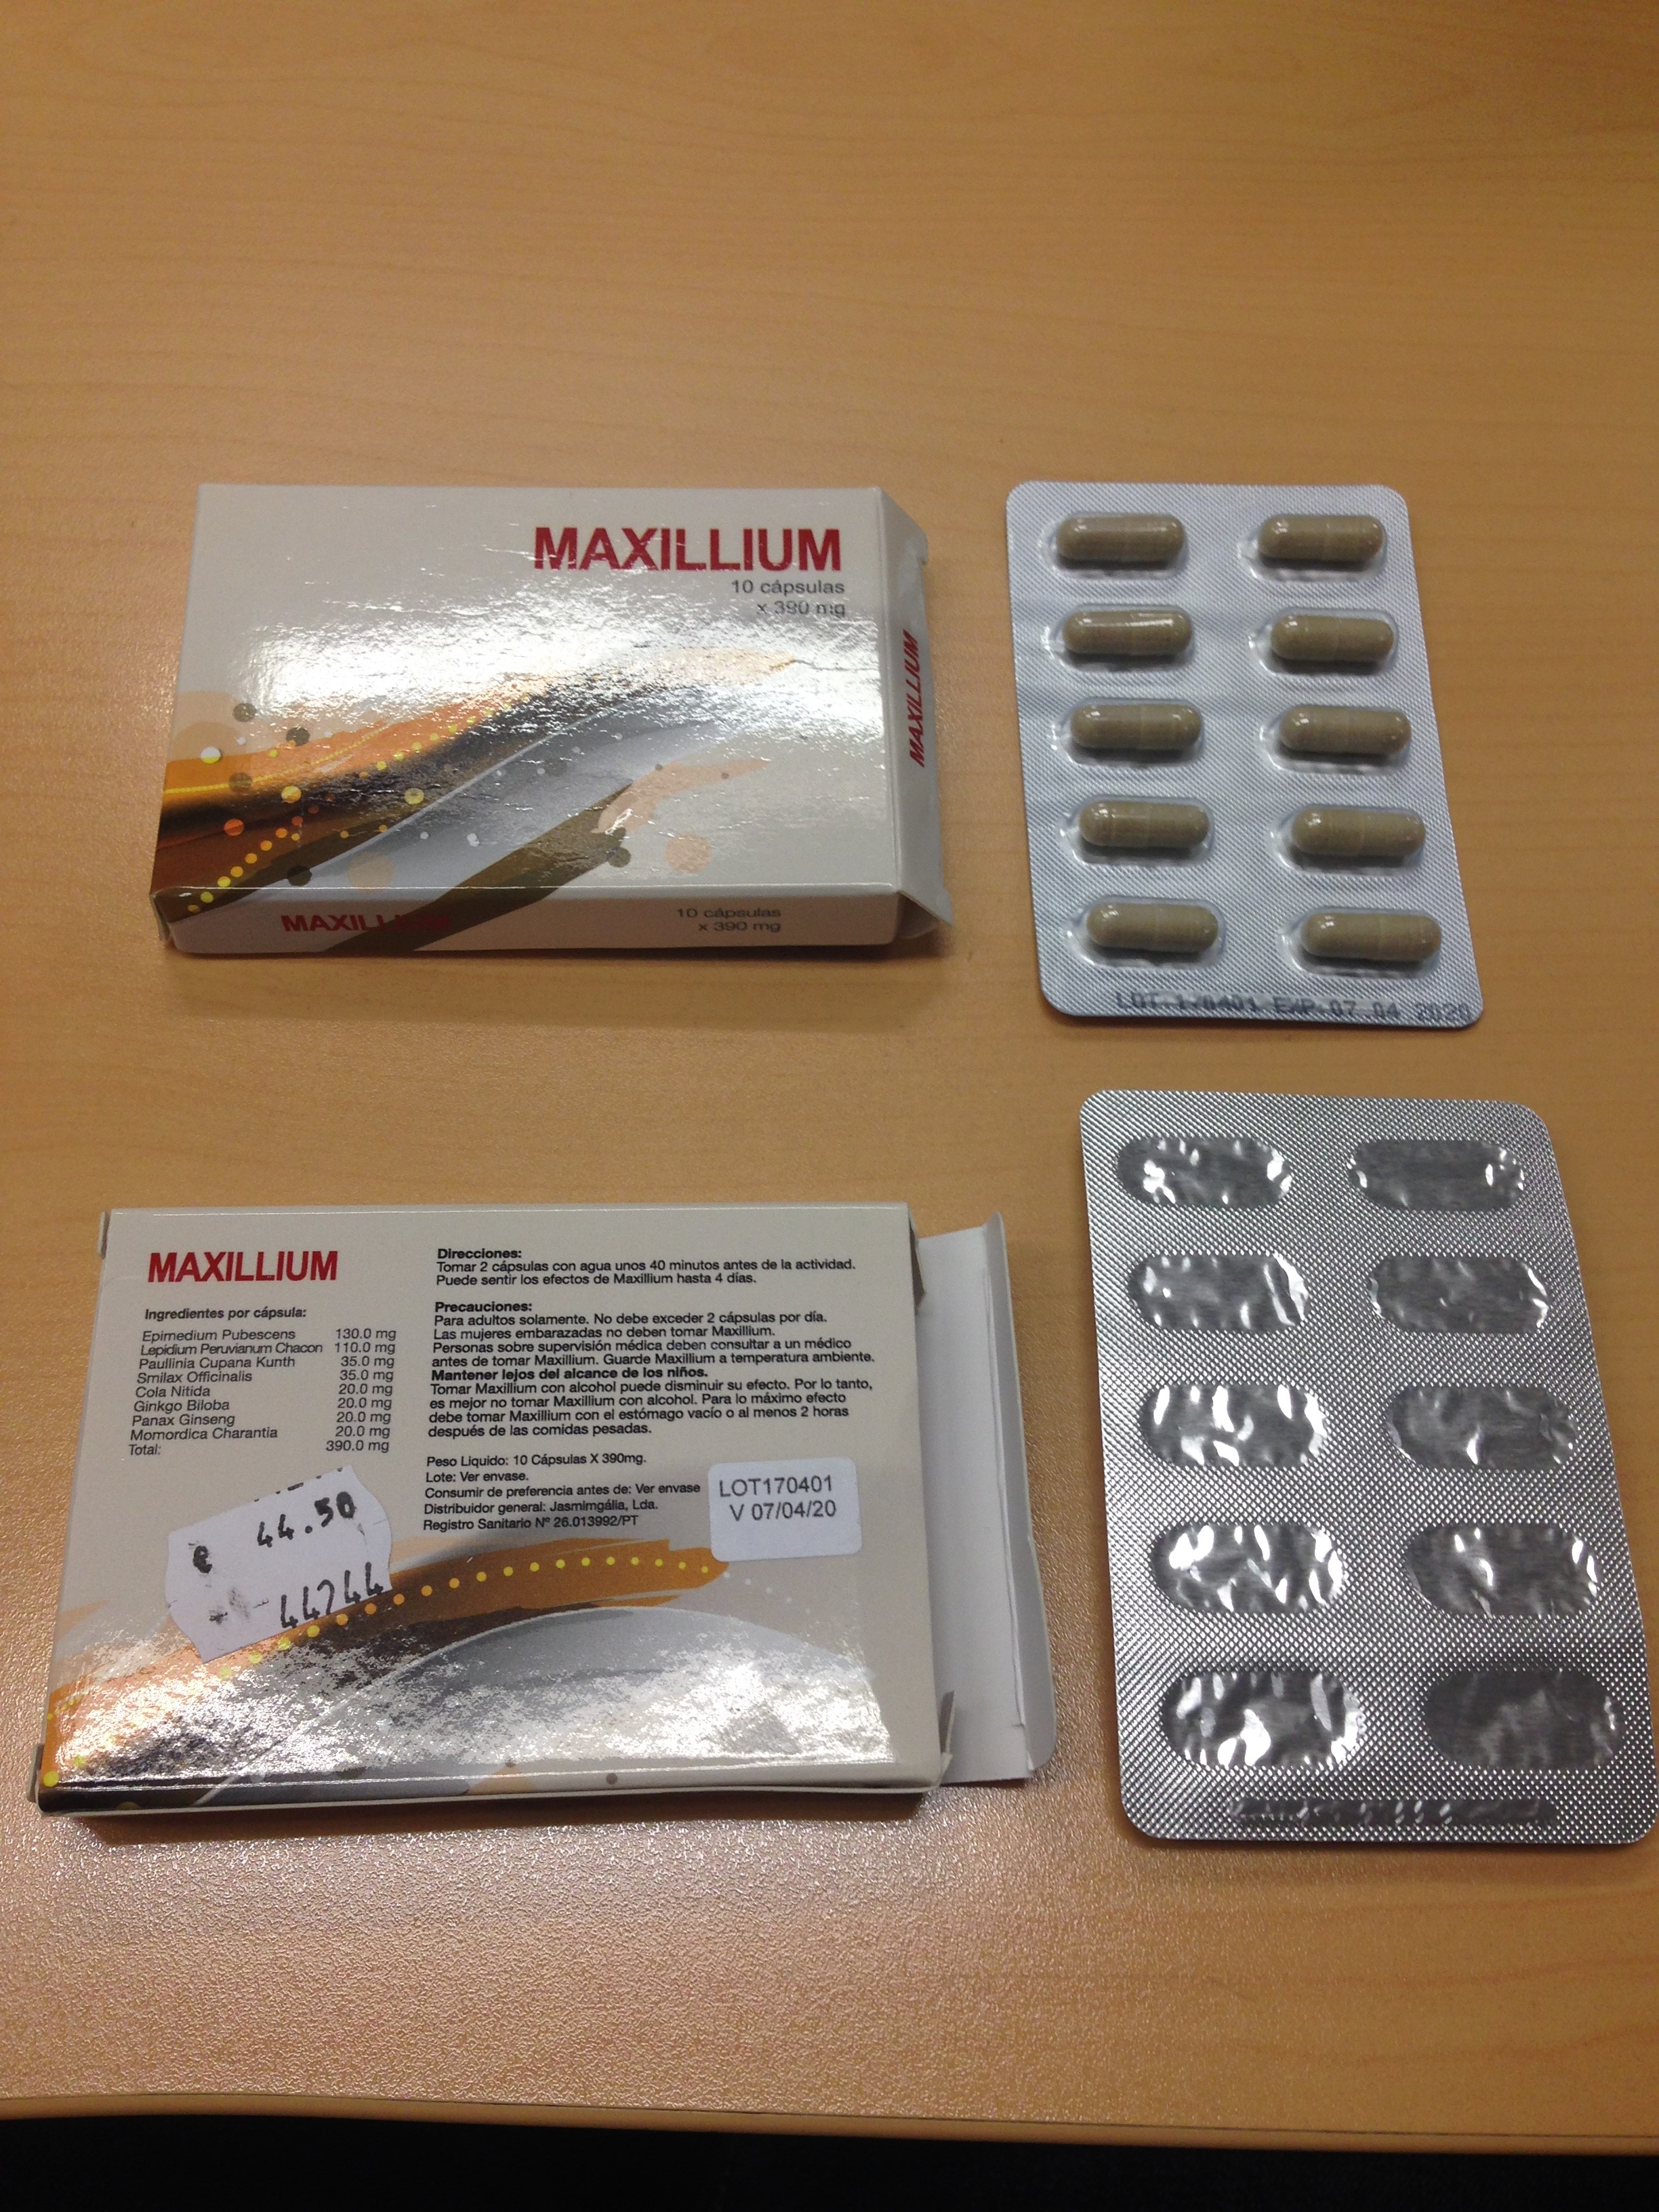 Image of the illigal product: Maxillium